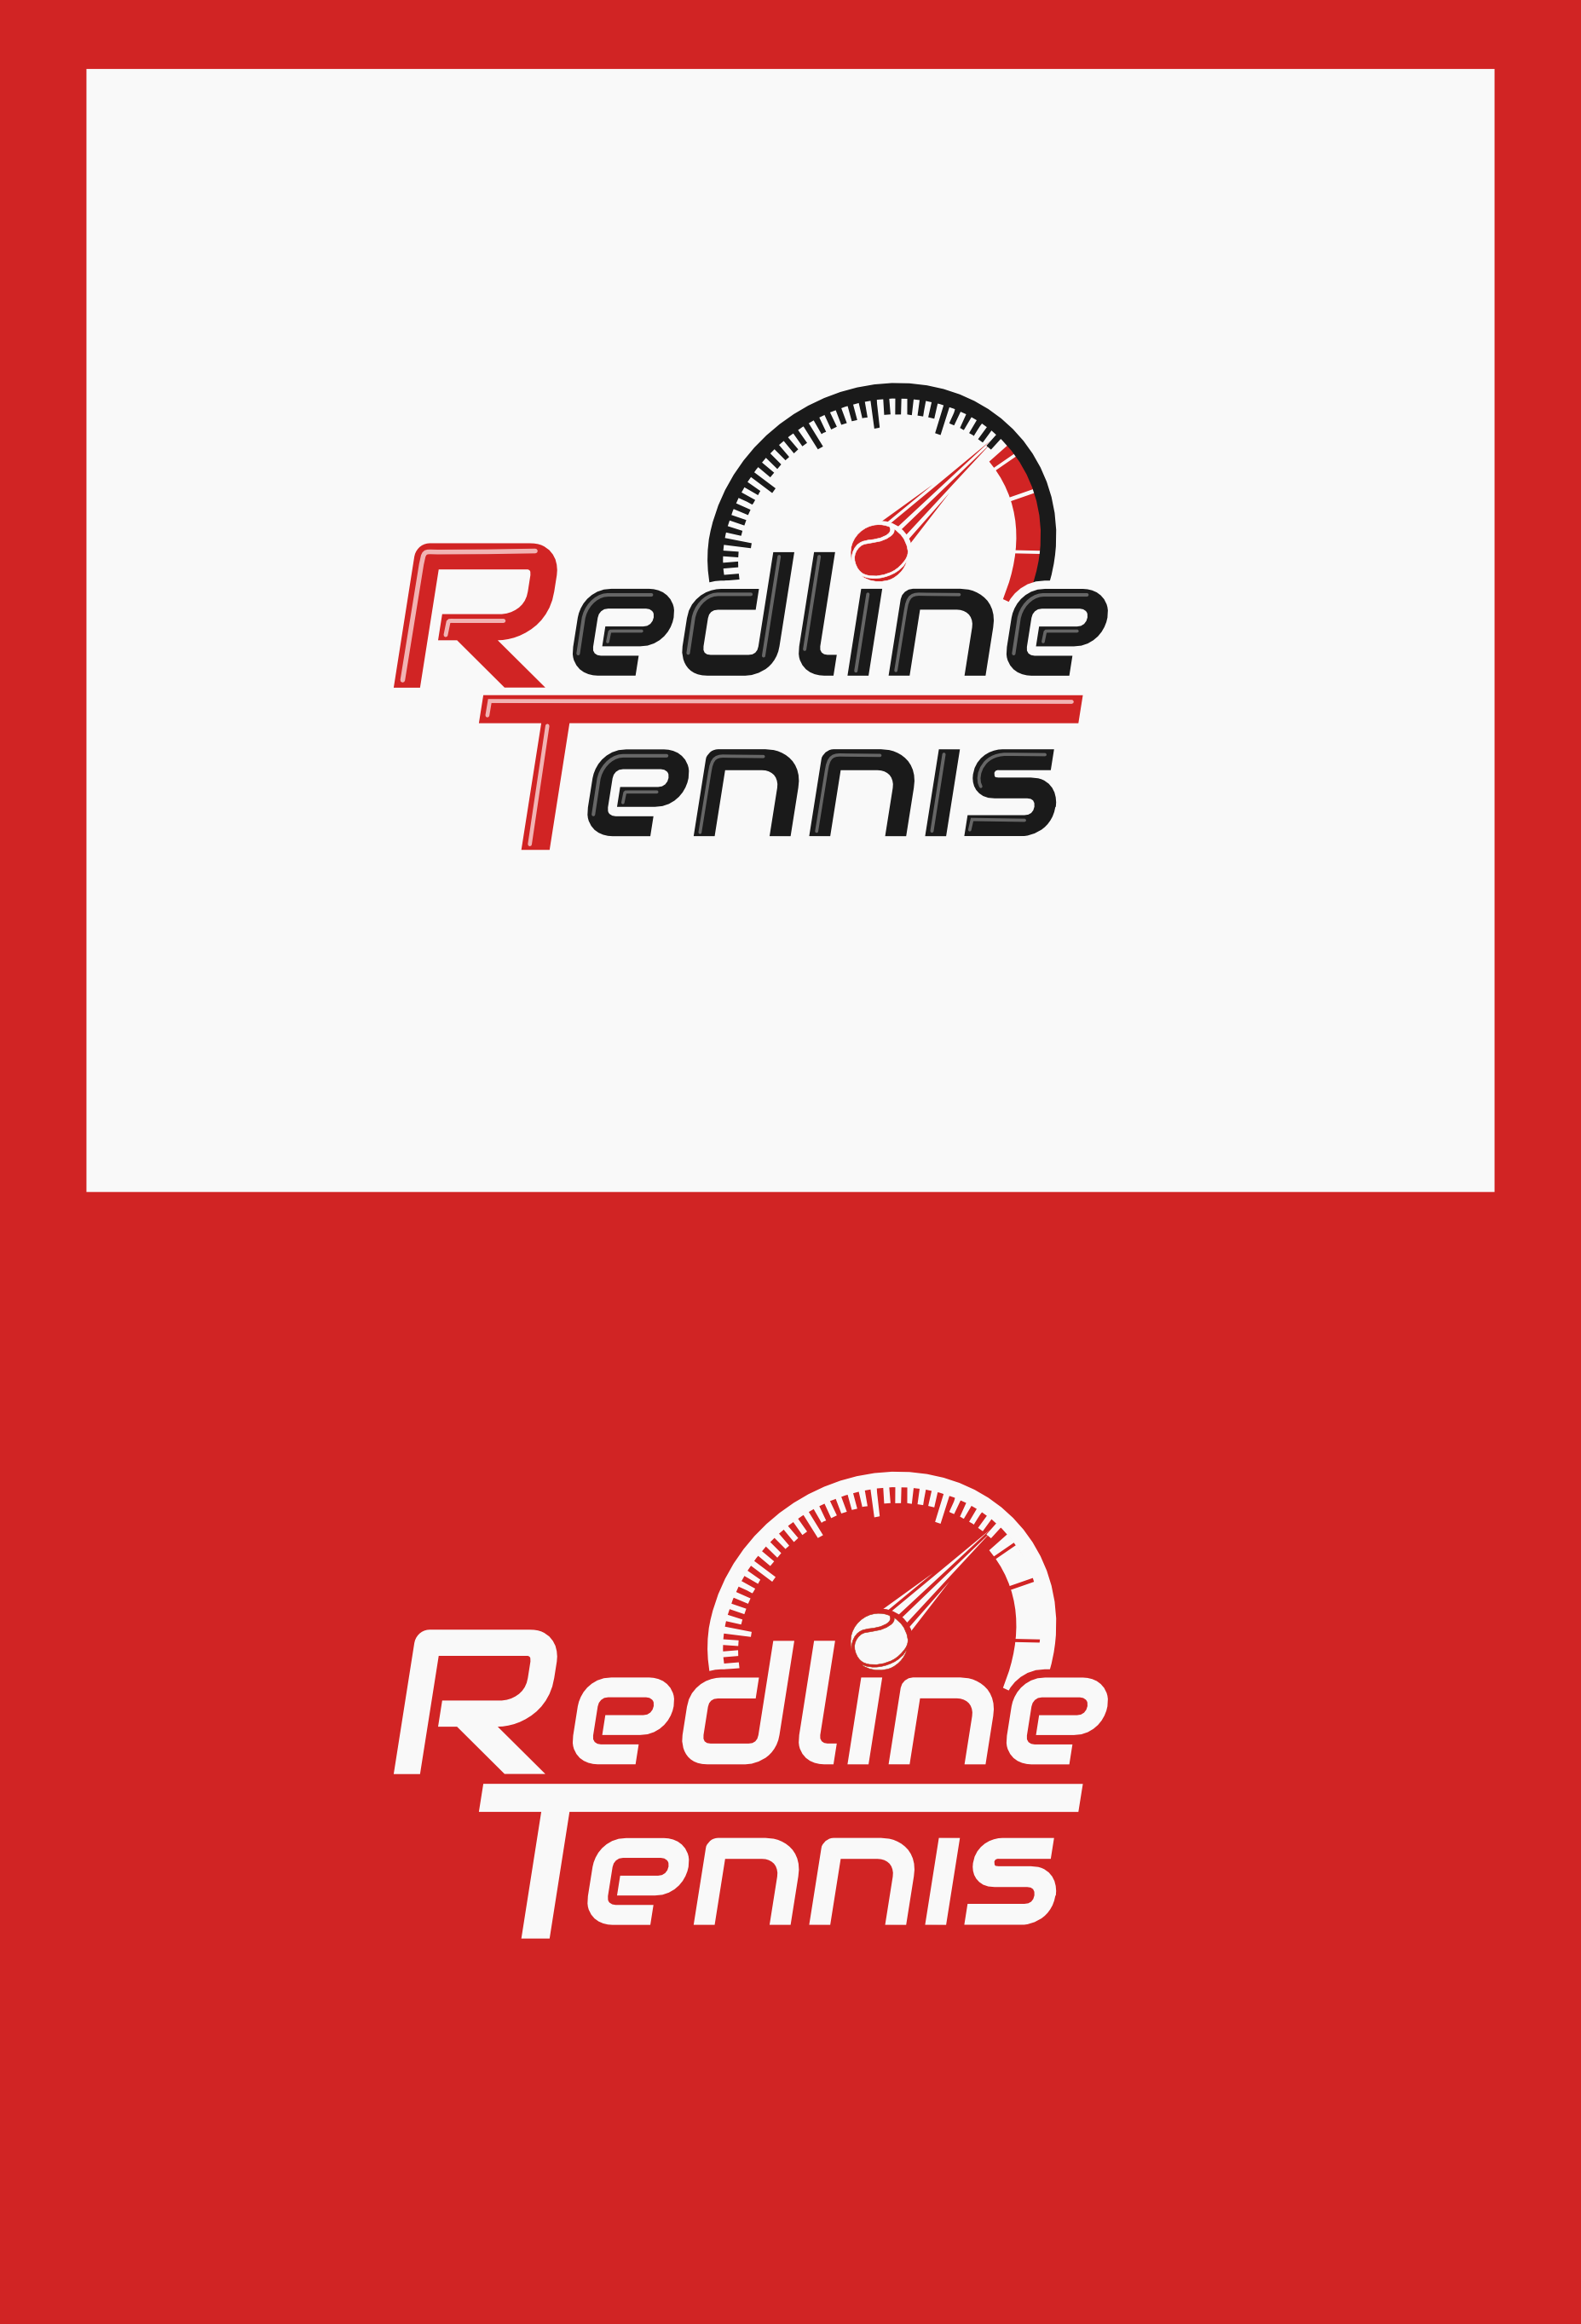 Create a modern and attractive design for an Australian tennis company.